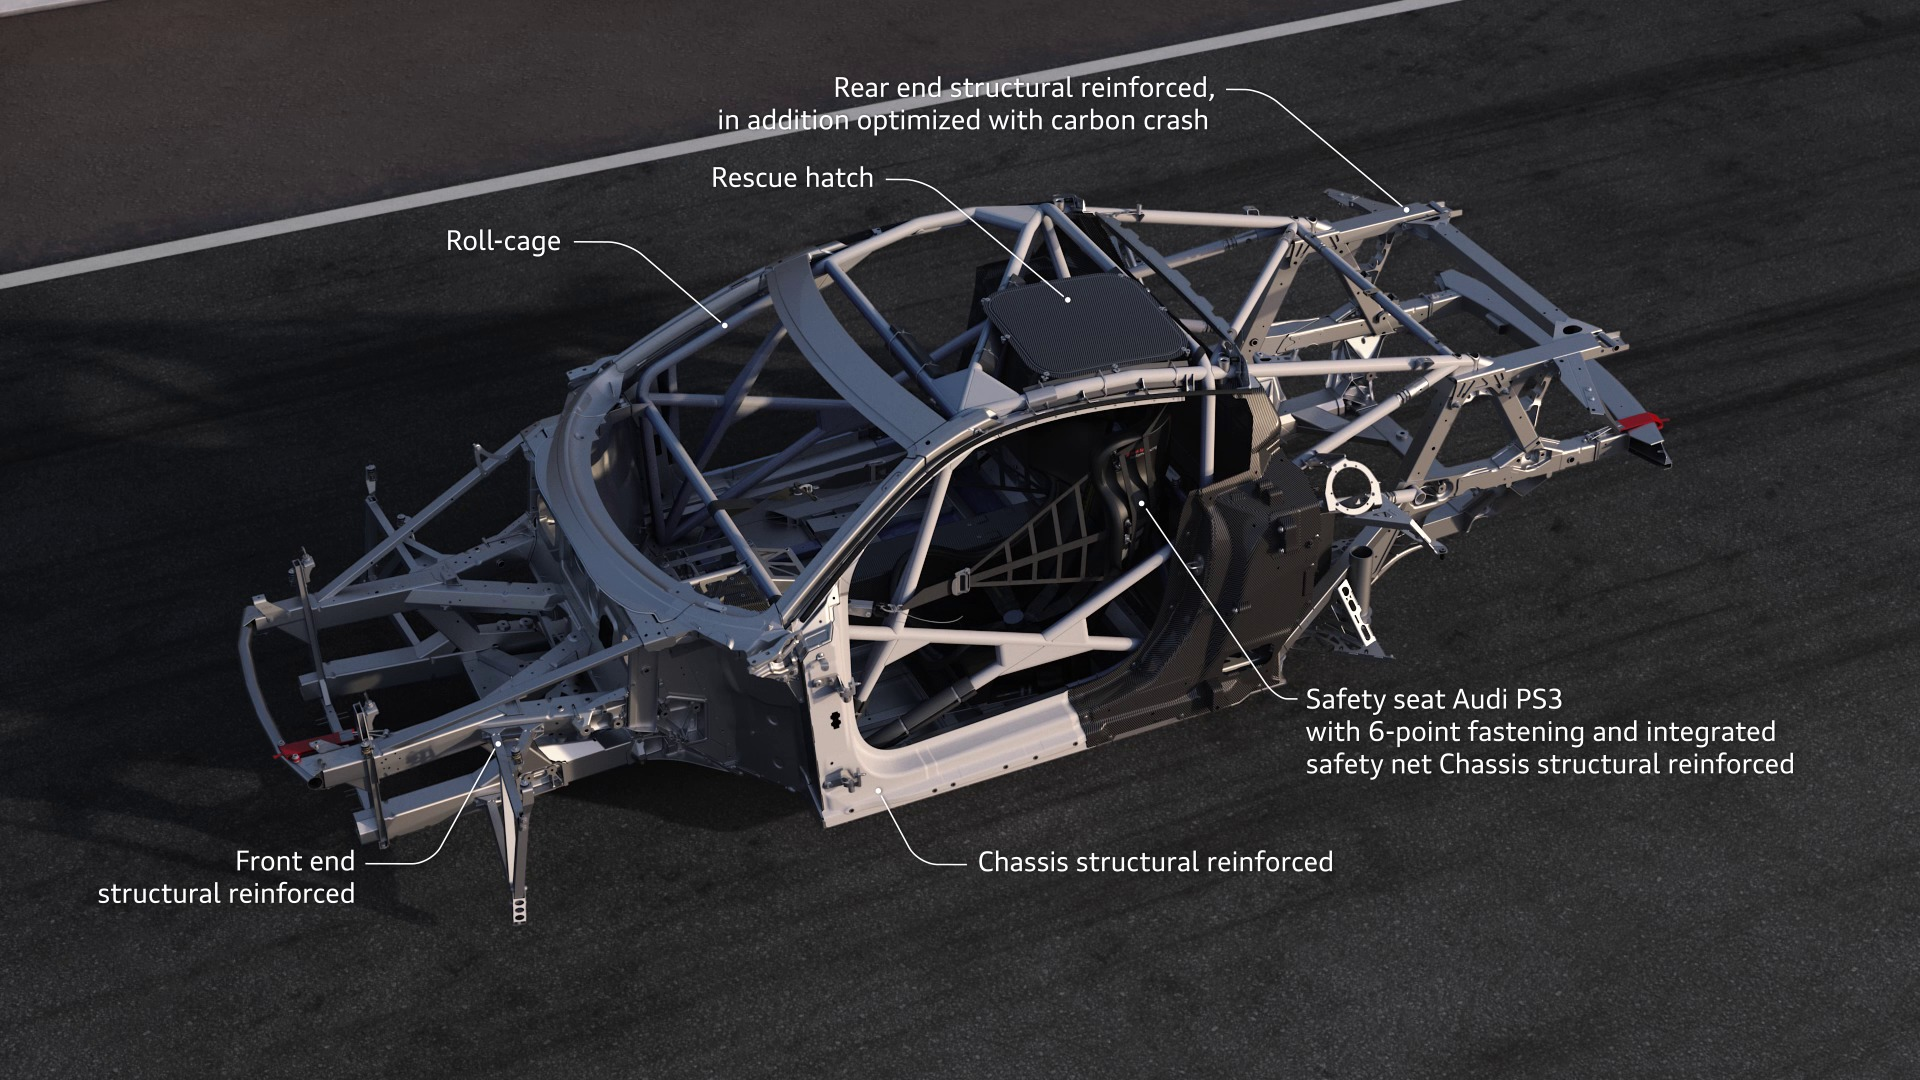 Audi R8 LMS – Safety concept and drivetrain